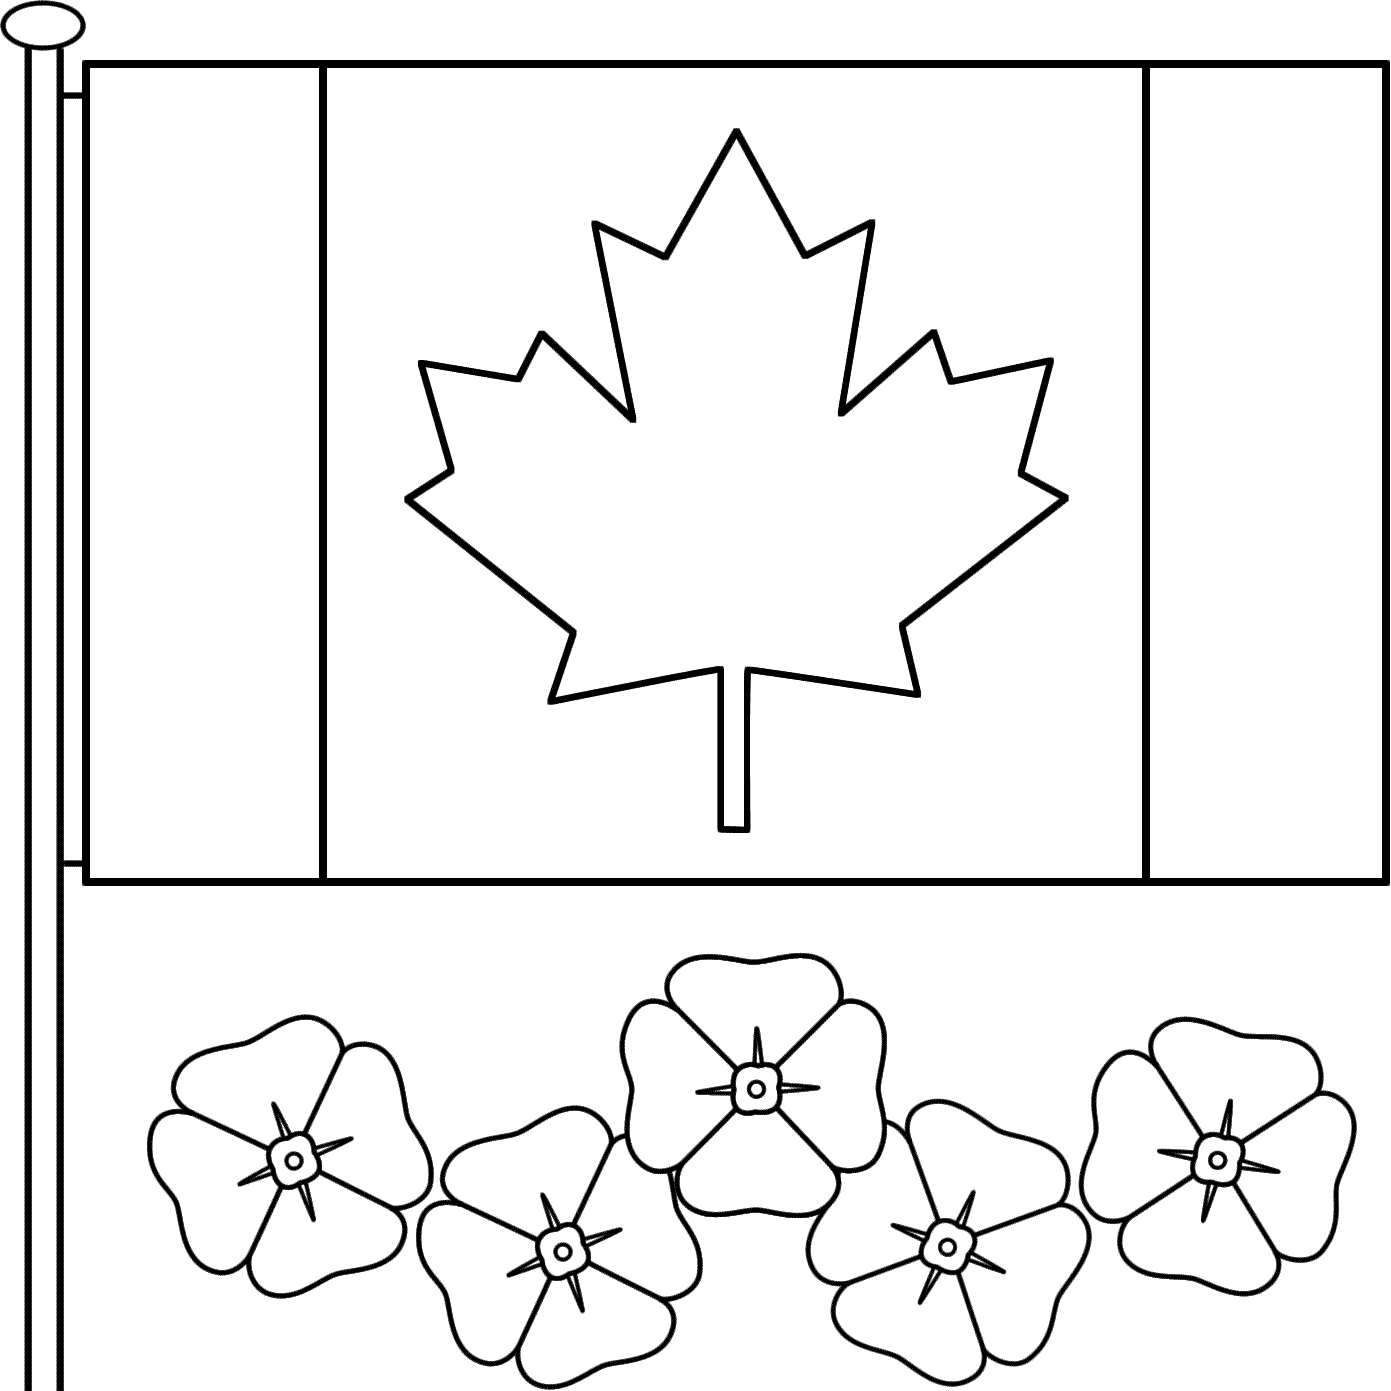 Free printable coloring pages veterans day - Remembrance Day Canada Colouring Pages Google Search